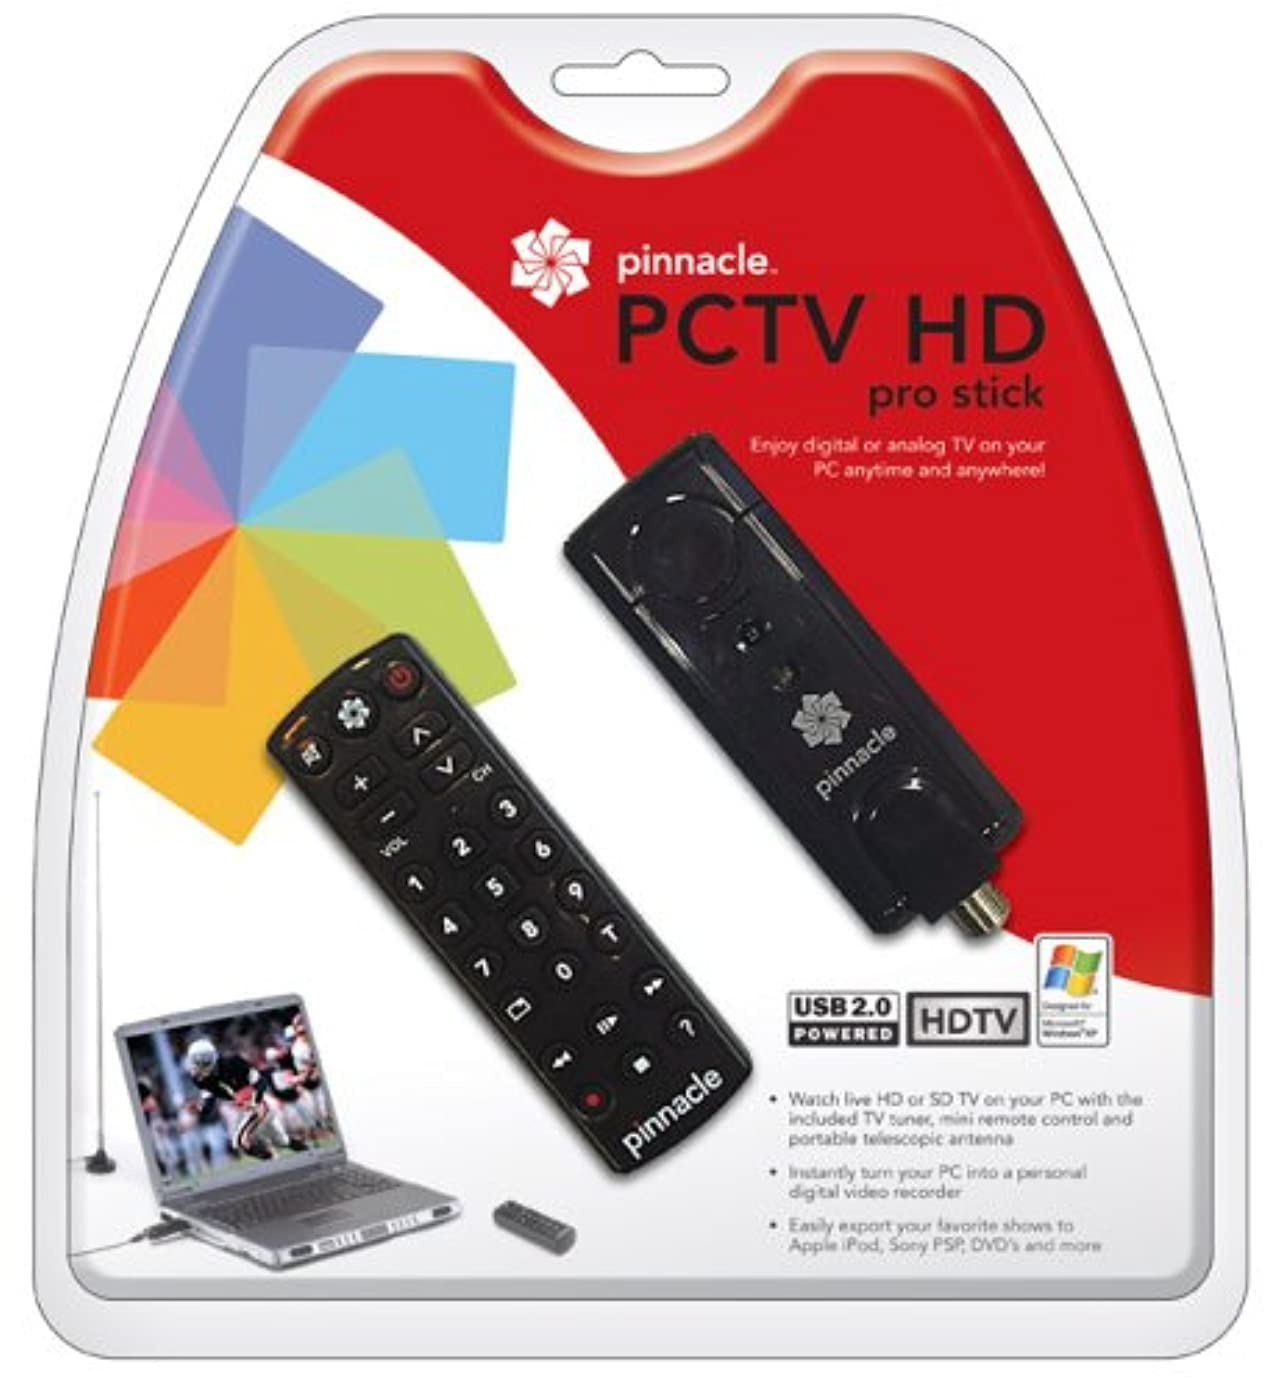 PCTV HD Pro Stick USB2 HDTV Tuner for Free HD